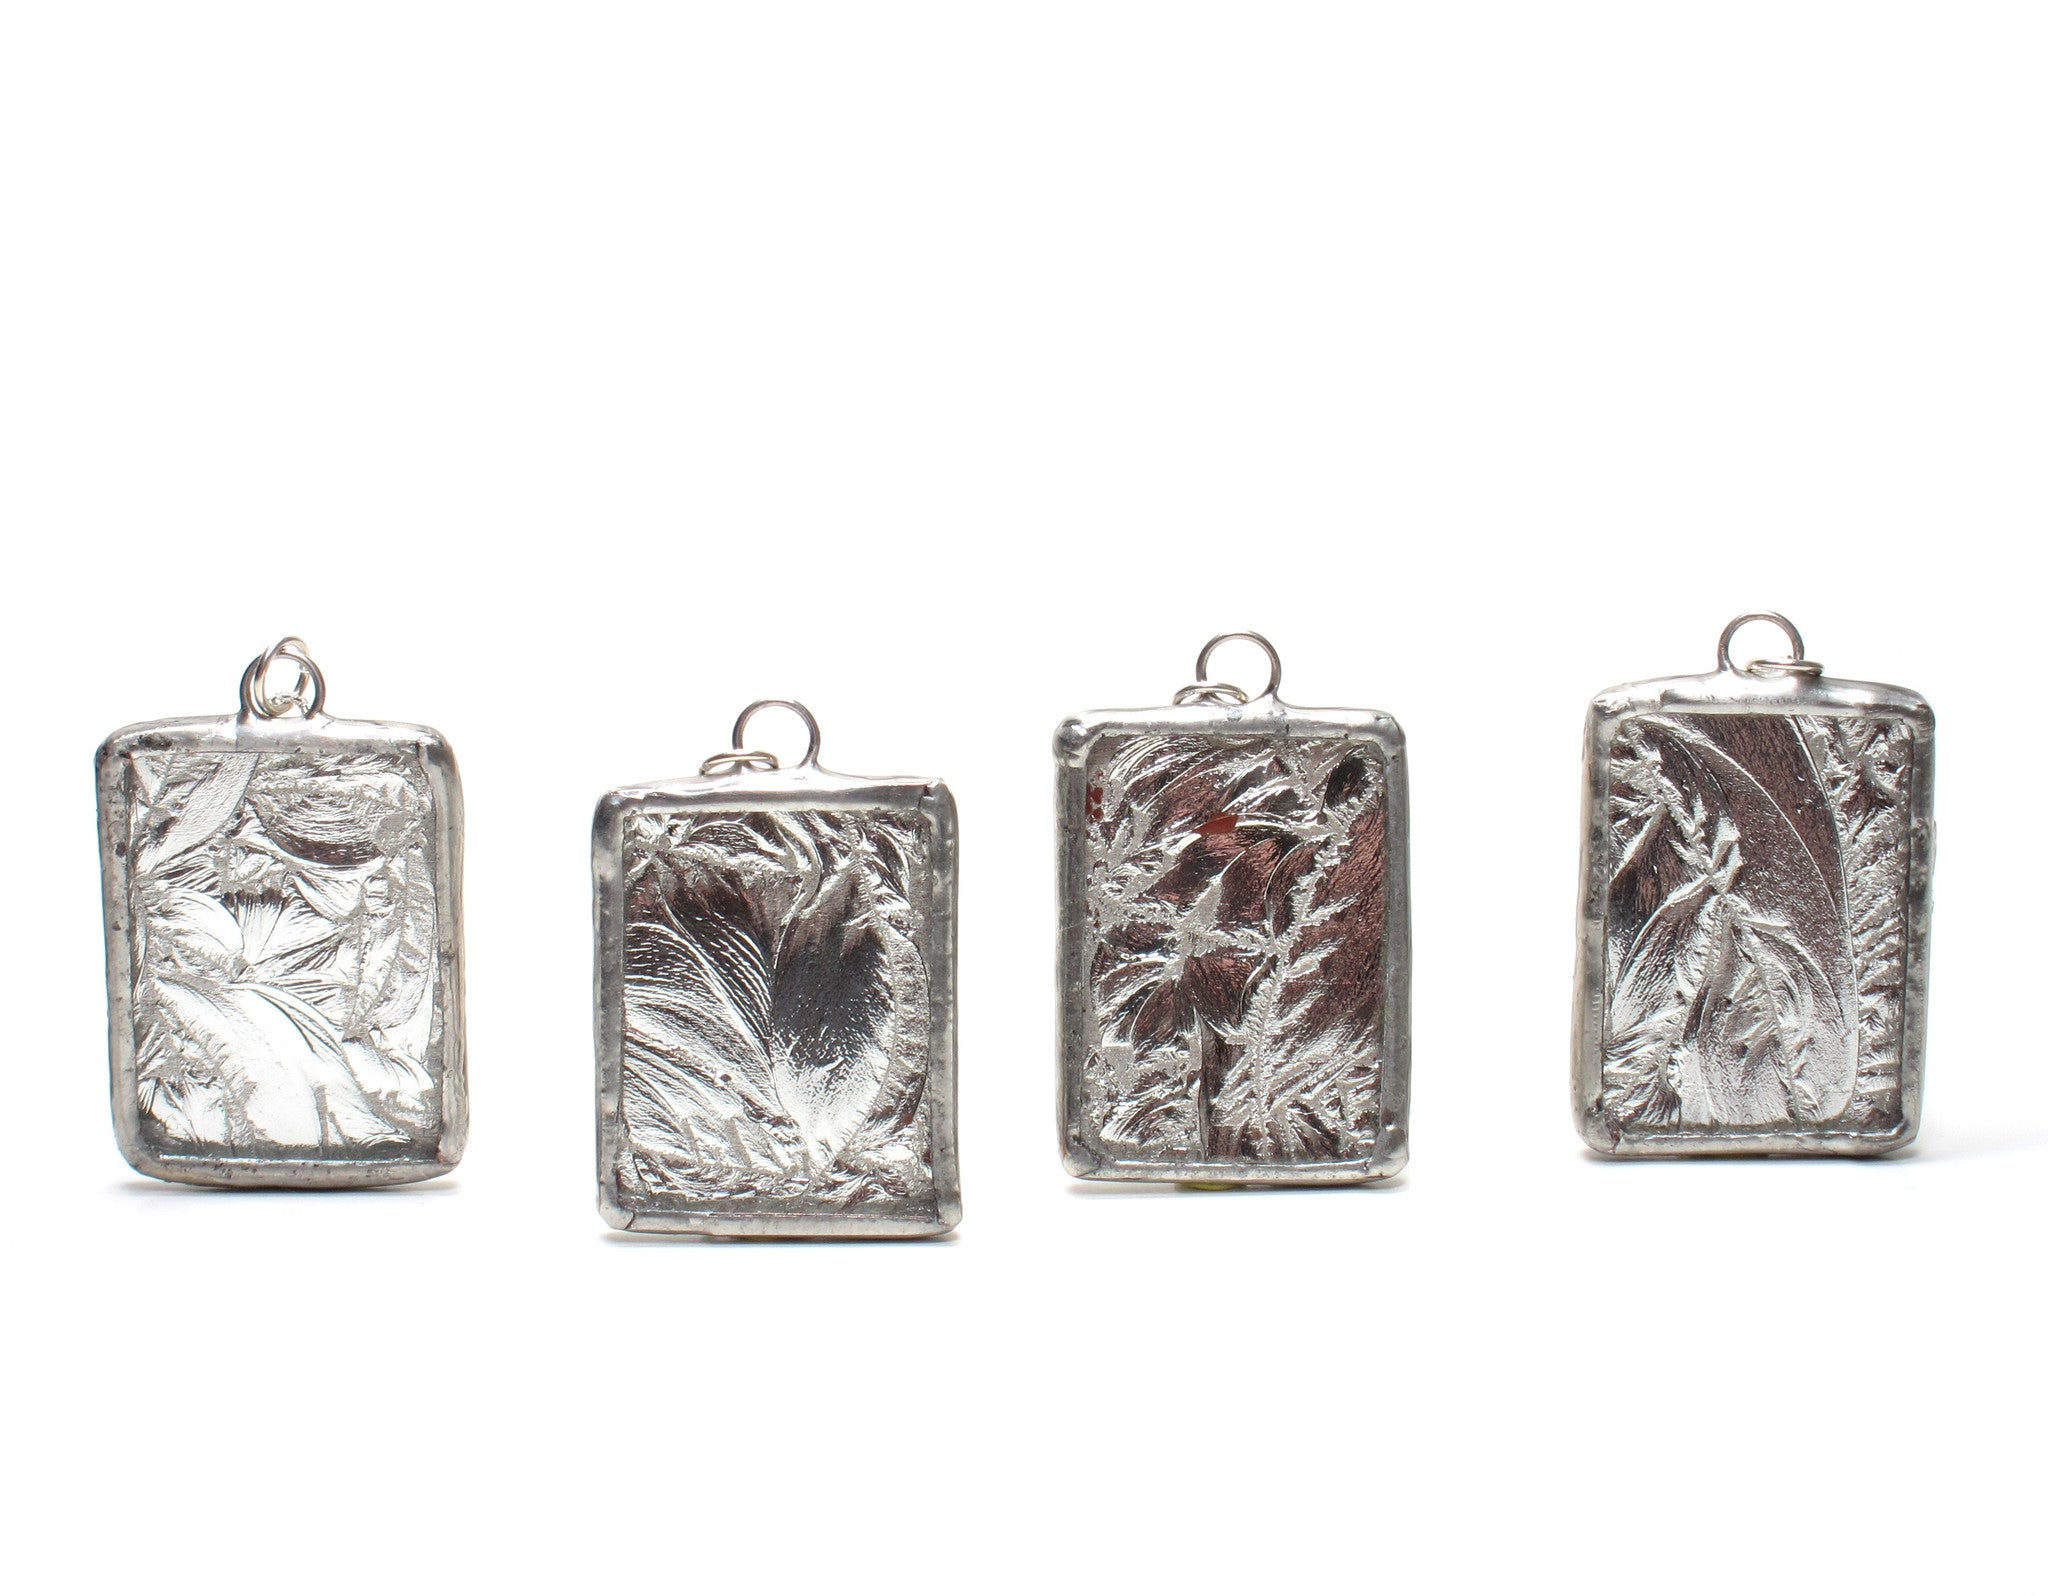 Silver frost bridesmaid necklaces set of 5 stained glass soldered silver frost bridesmaid necklaces set of 5 stained glass soldered pendants aloadofball Images